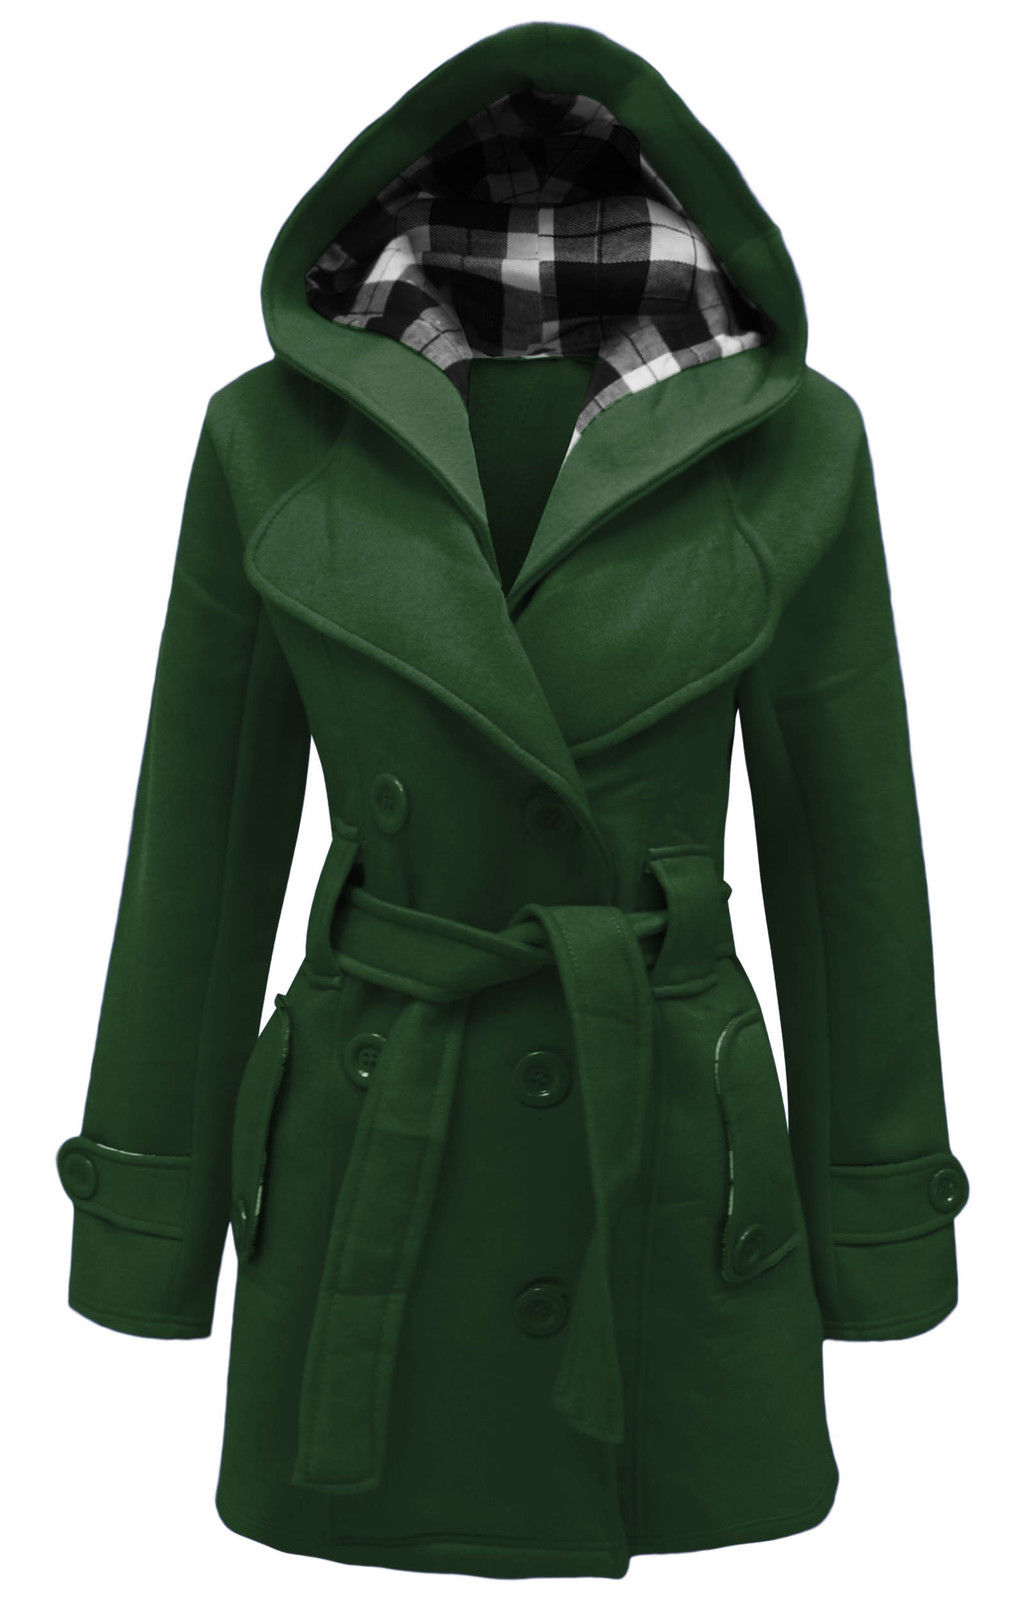 Cozy & Colorful Winter Coats - The Style Basket